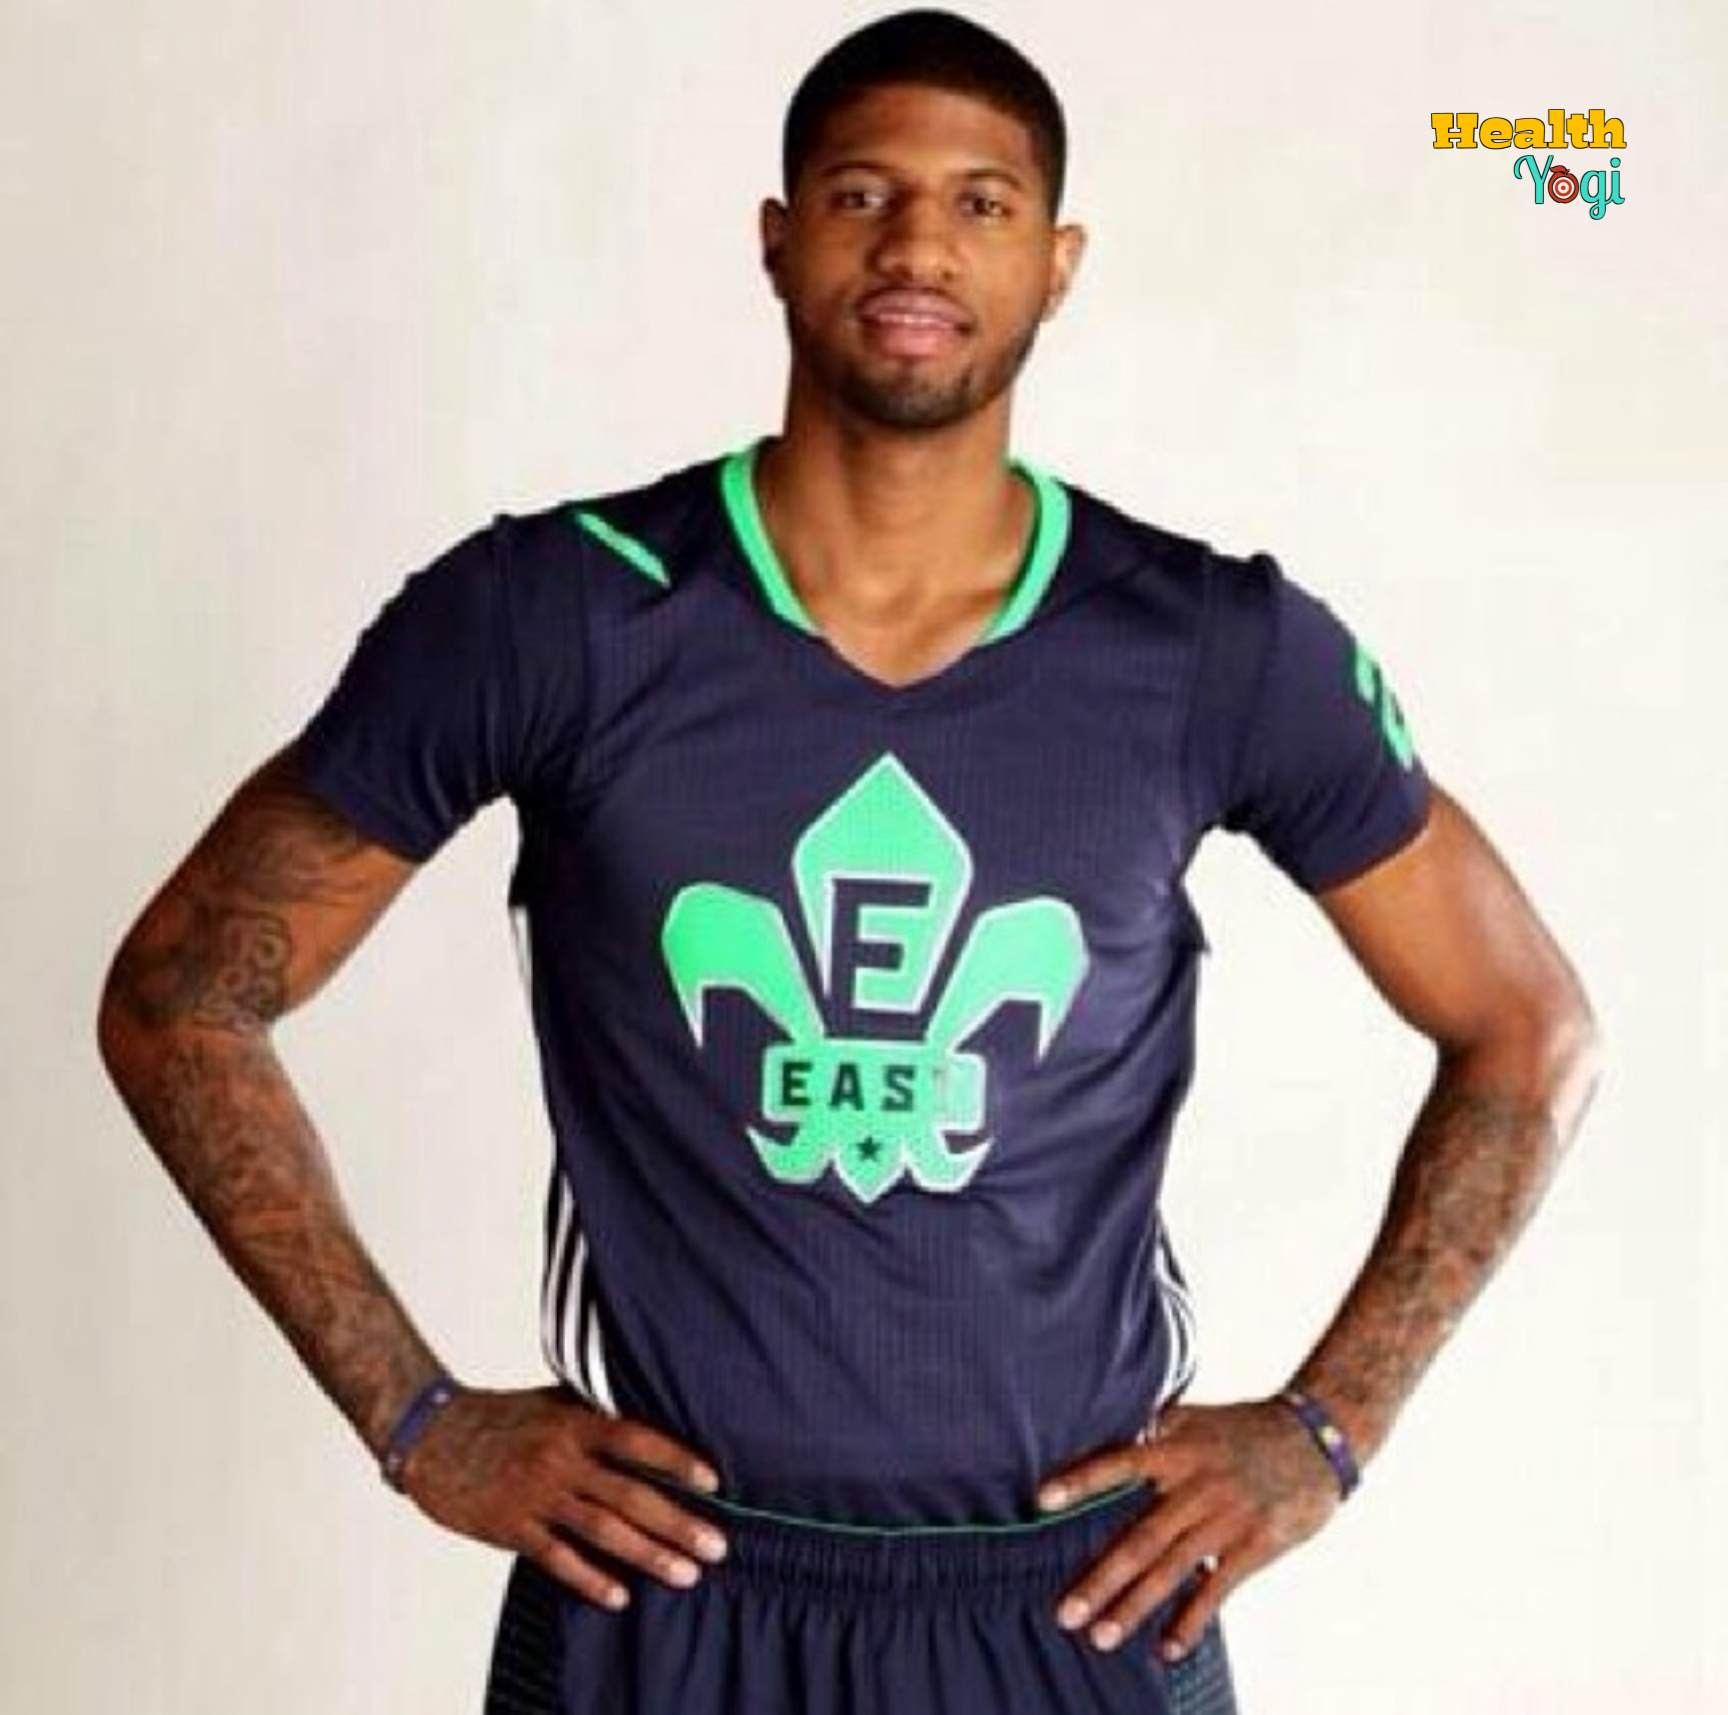 Paul George Diet Plan and Workout Routine | Age | Height | Body Measurements | Workout Videos | Instagram Photos, Paul George workout, Paul George diet , Paul George meal, Paul George workout routine, Paul George fitness regime, Paul George abs workout, Paul George training, Paul George new diet, Paul George workout tips, Paul George body HD Photo, Paul George bodybuilding, Paul George protein supplements, Paul George age height weight, Paul George gym workout, Paul George fit body, Paul George body secrets